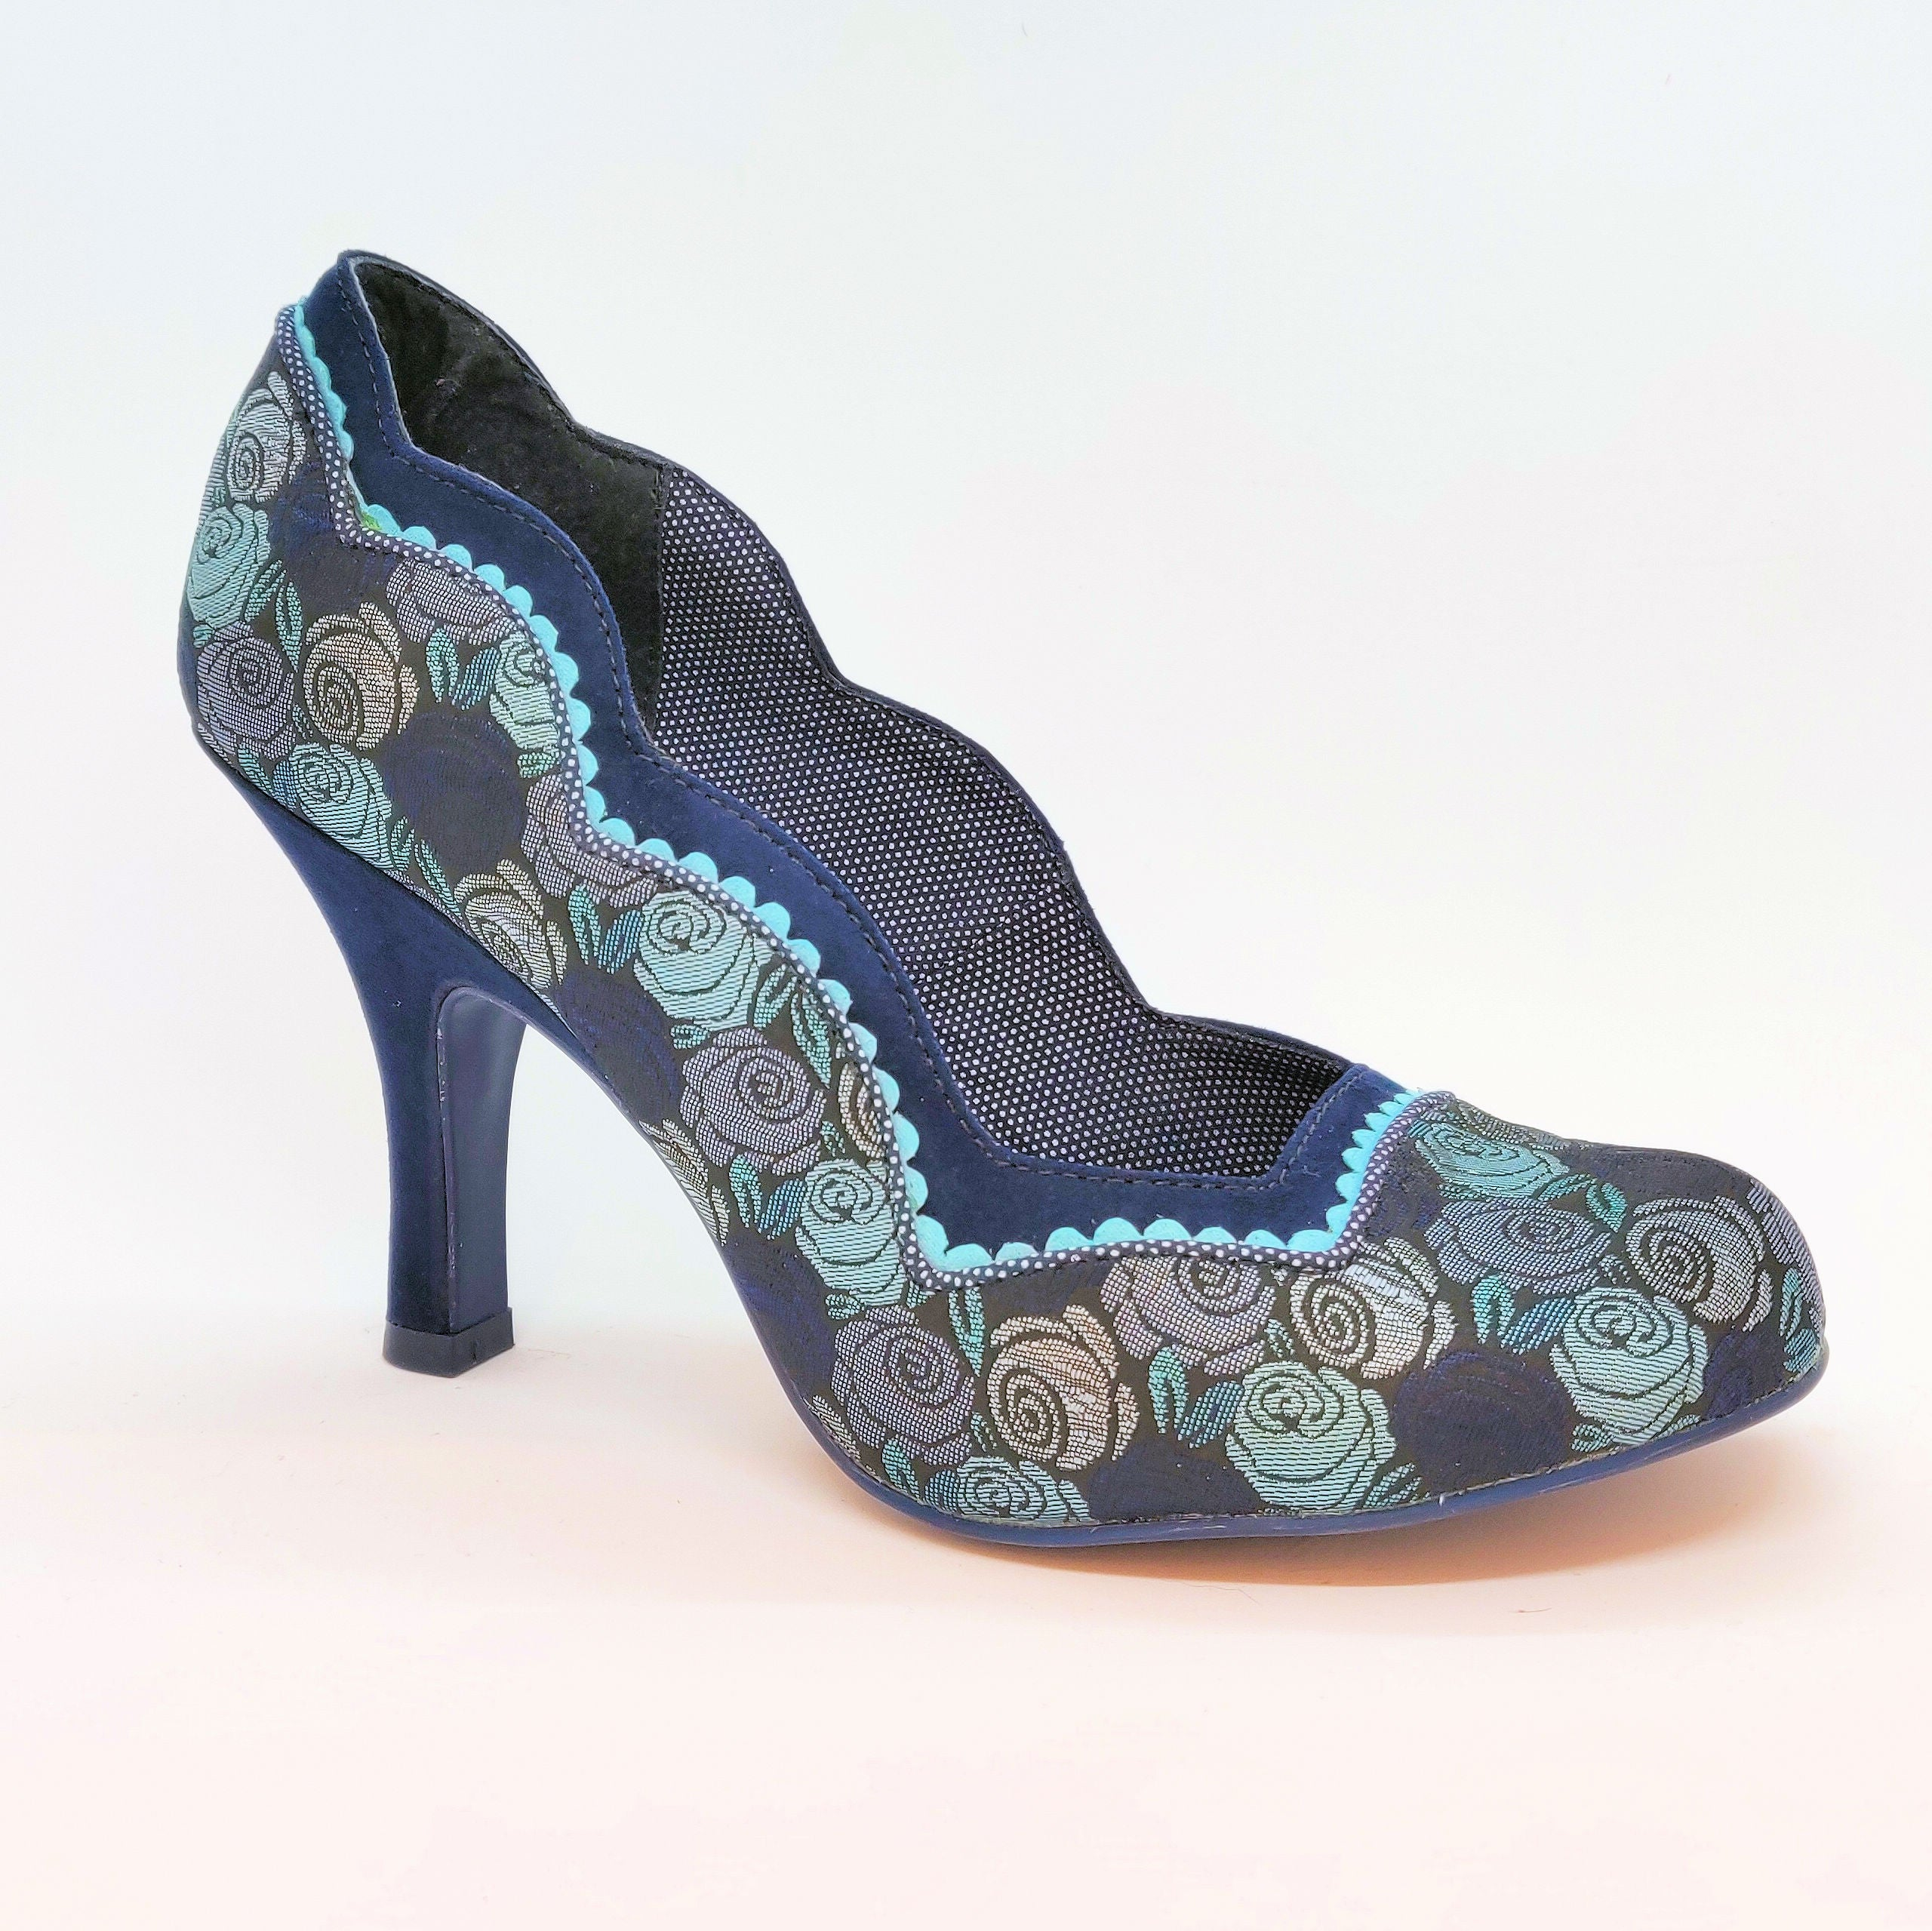 Pumps High Heels Madison Blue - Ruby Shoo - Bombus